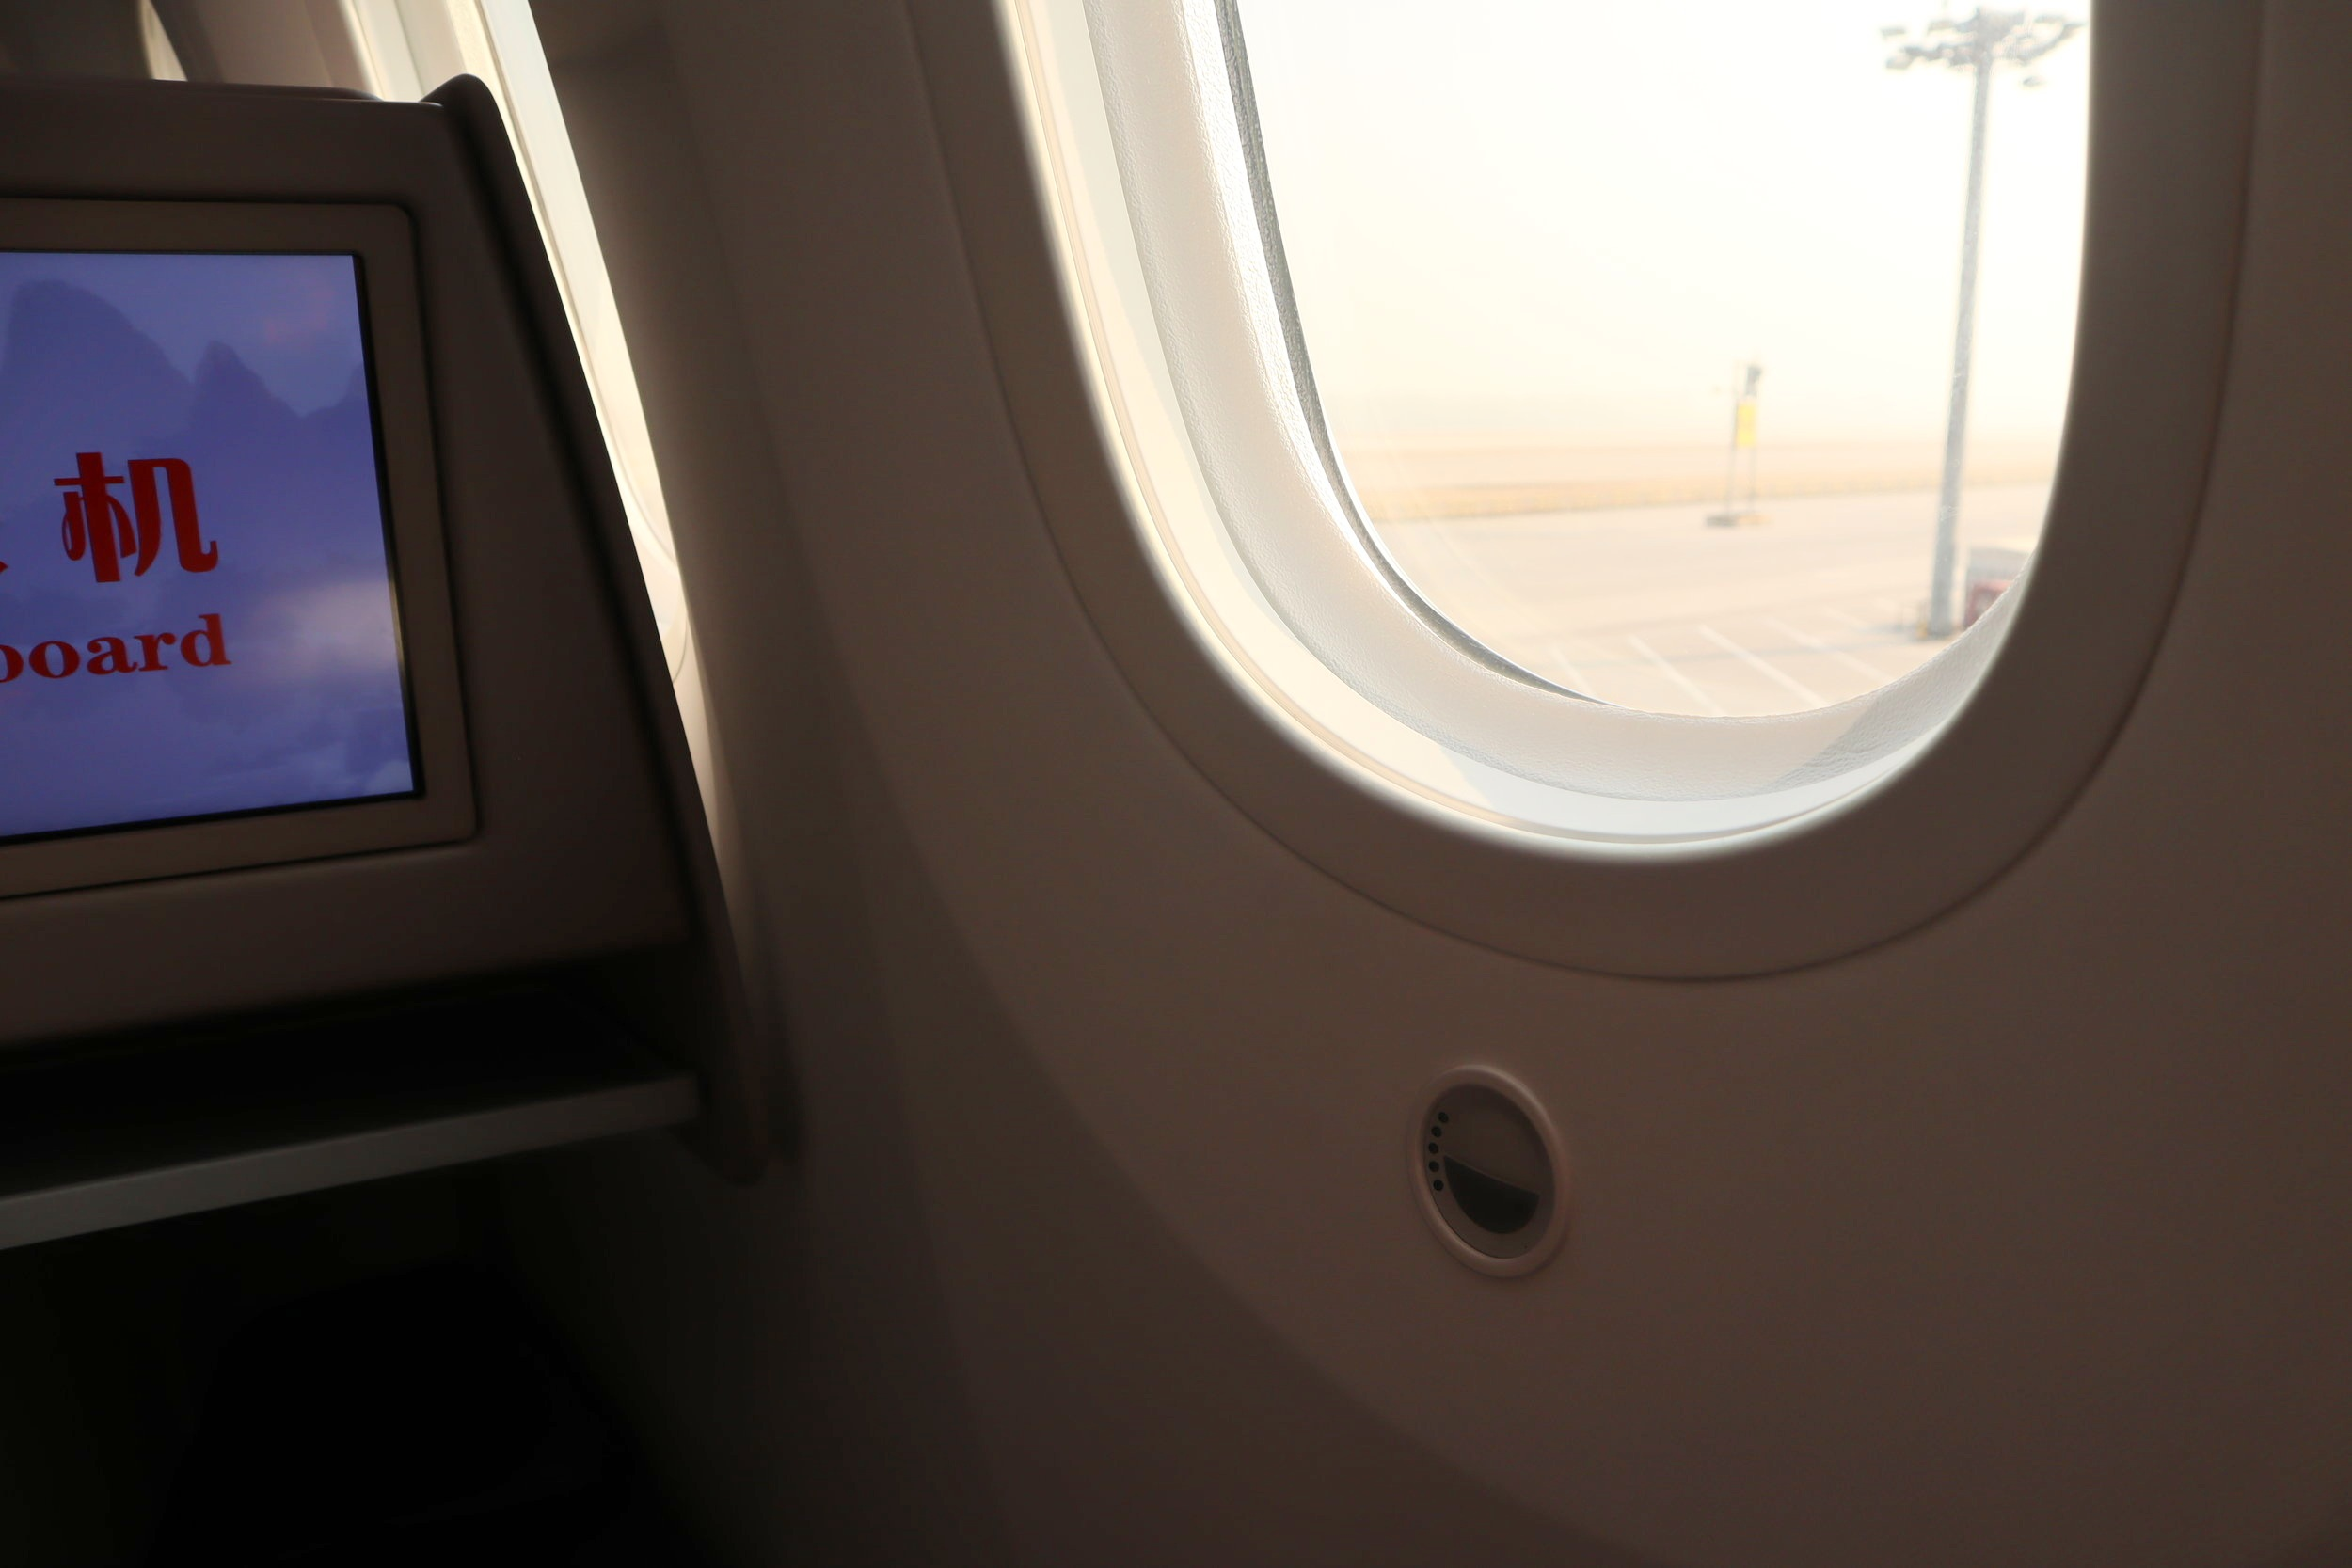 Air China business class – Electronic windows